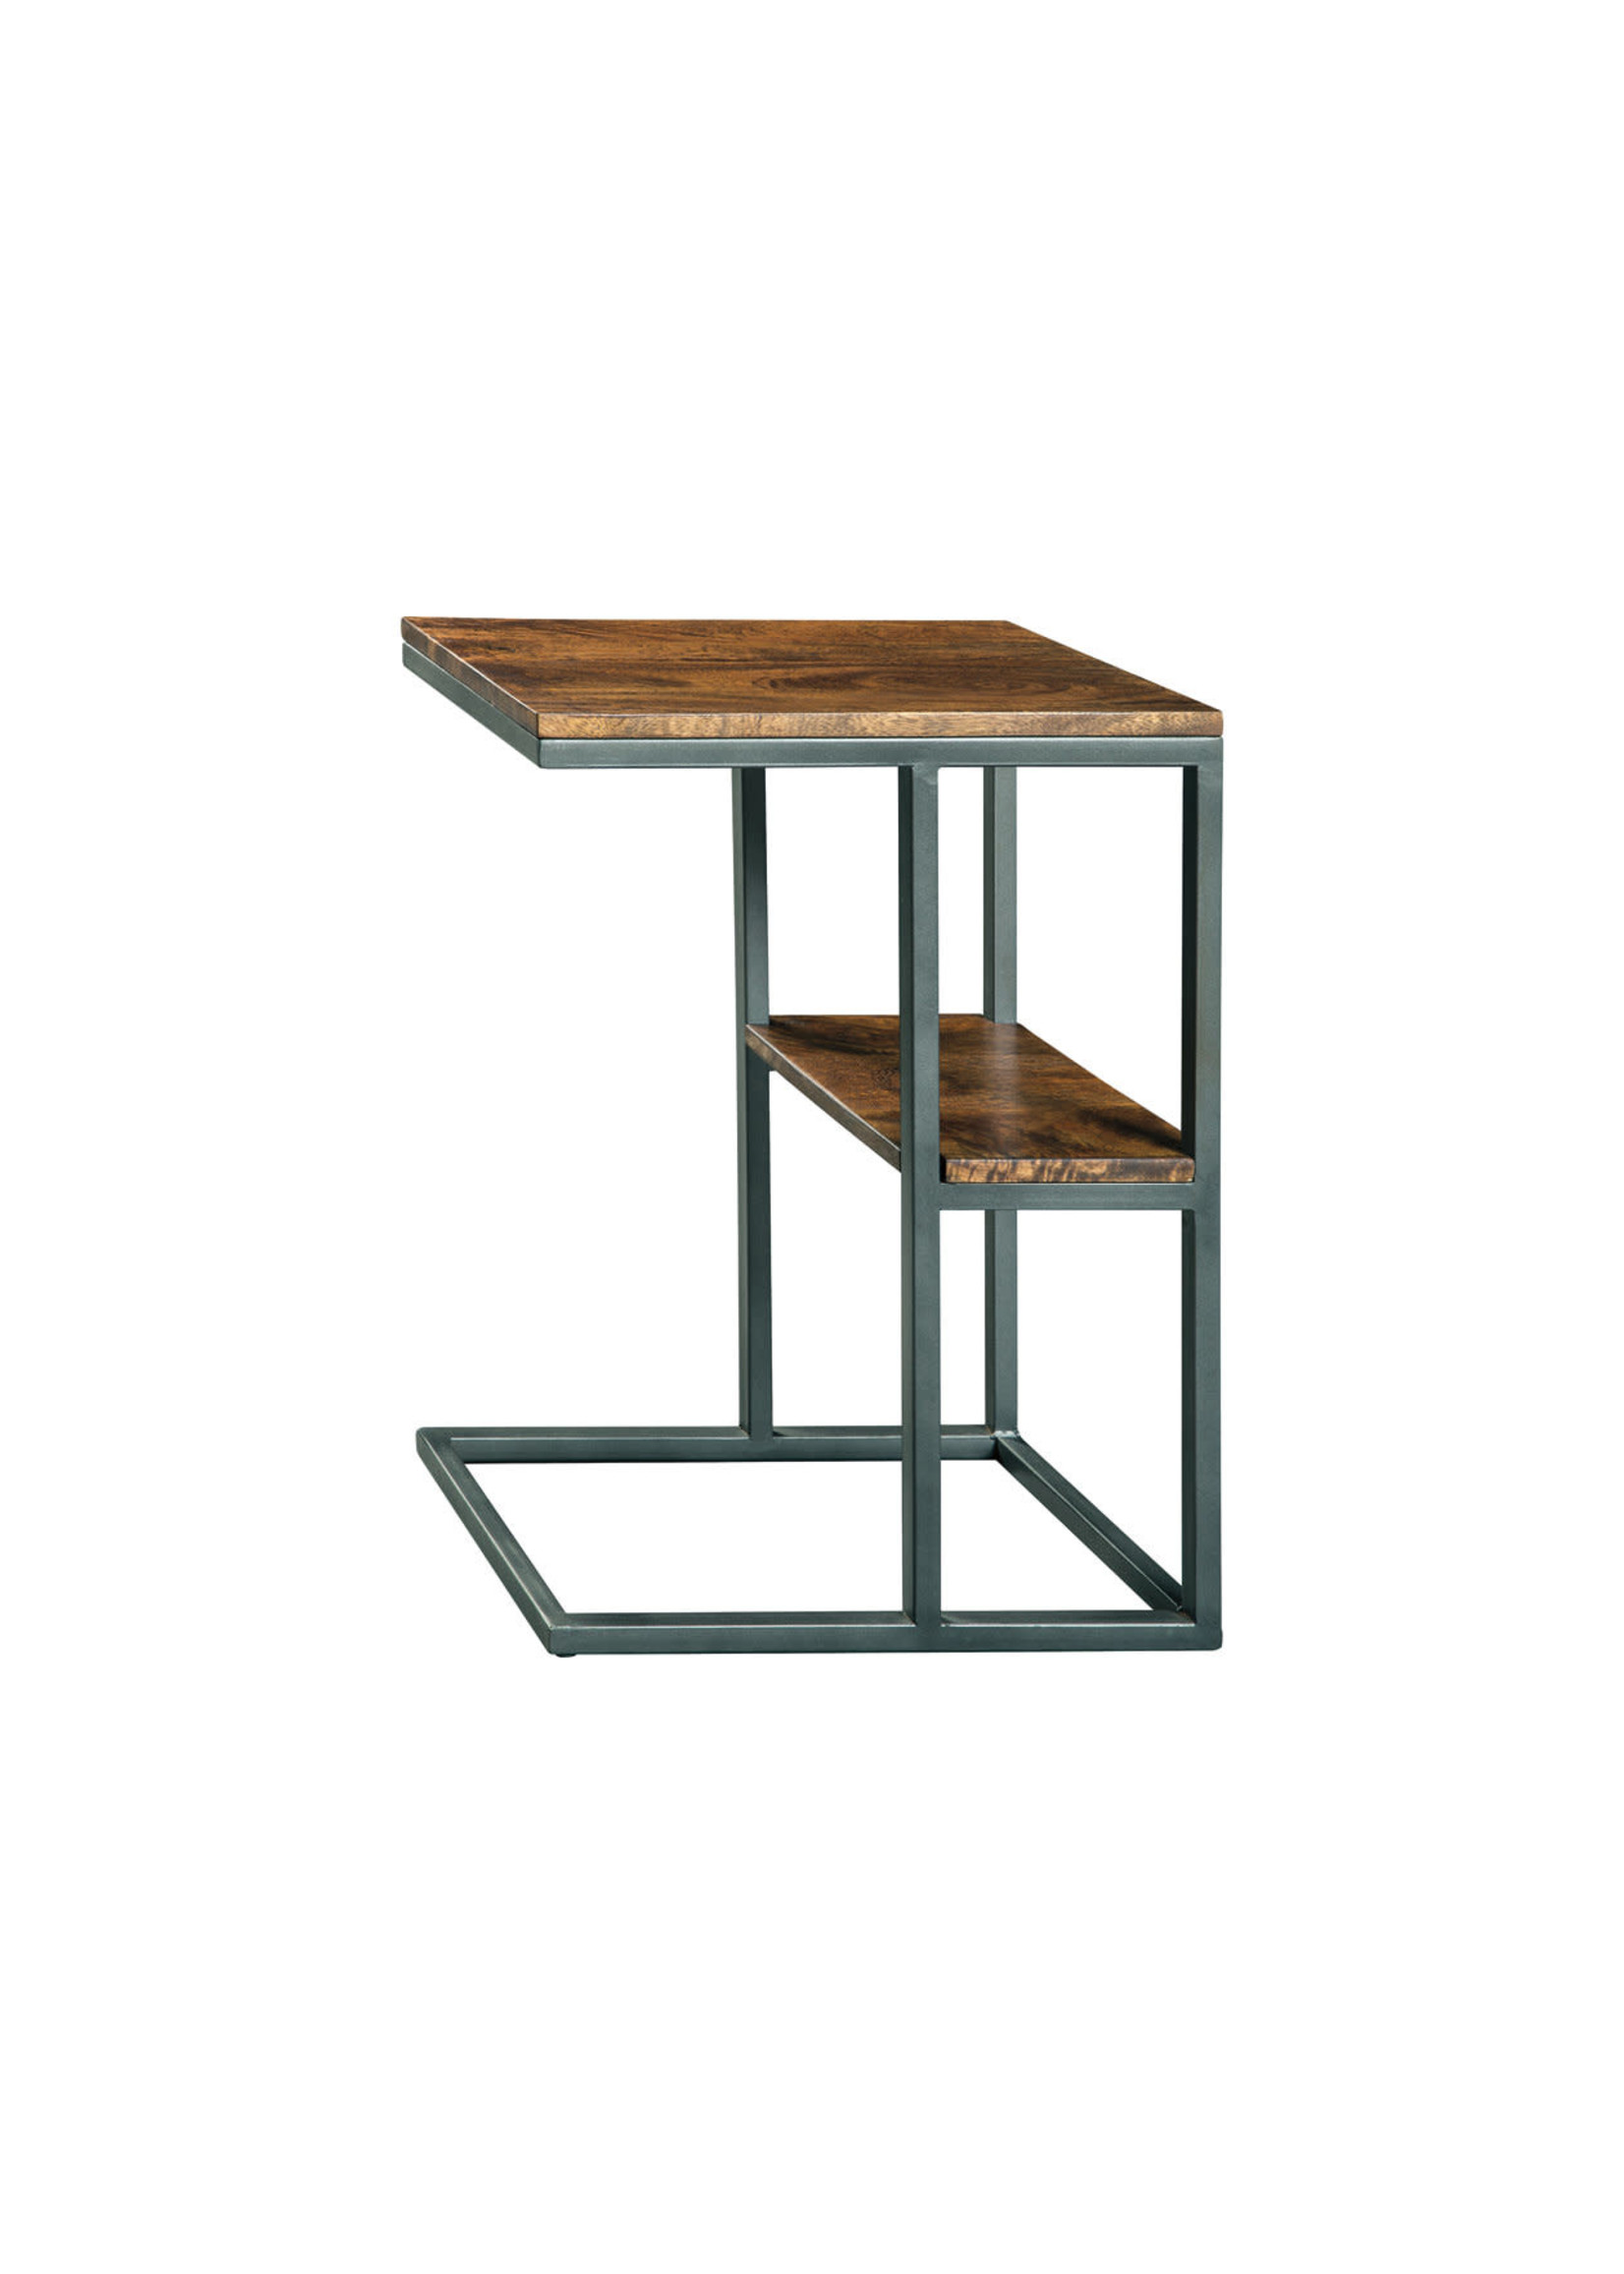 ASHLEY A4000049 ACCENT TABLE FORESTMIN NATURAL/BLACK